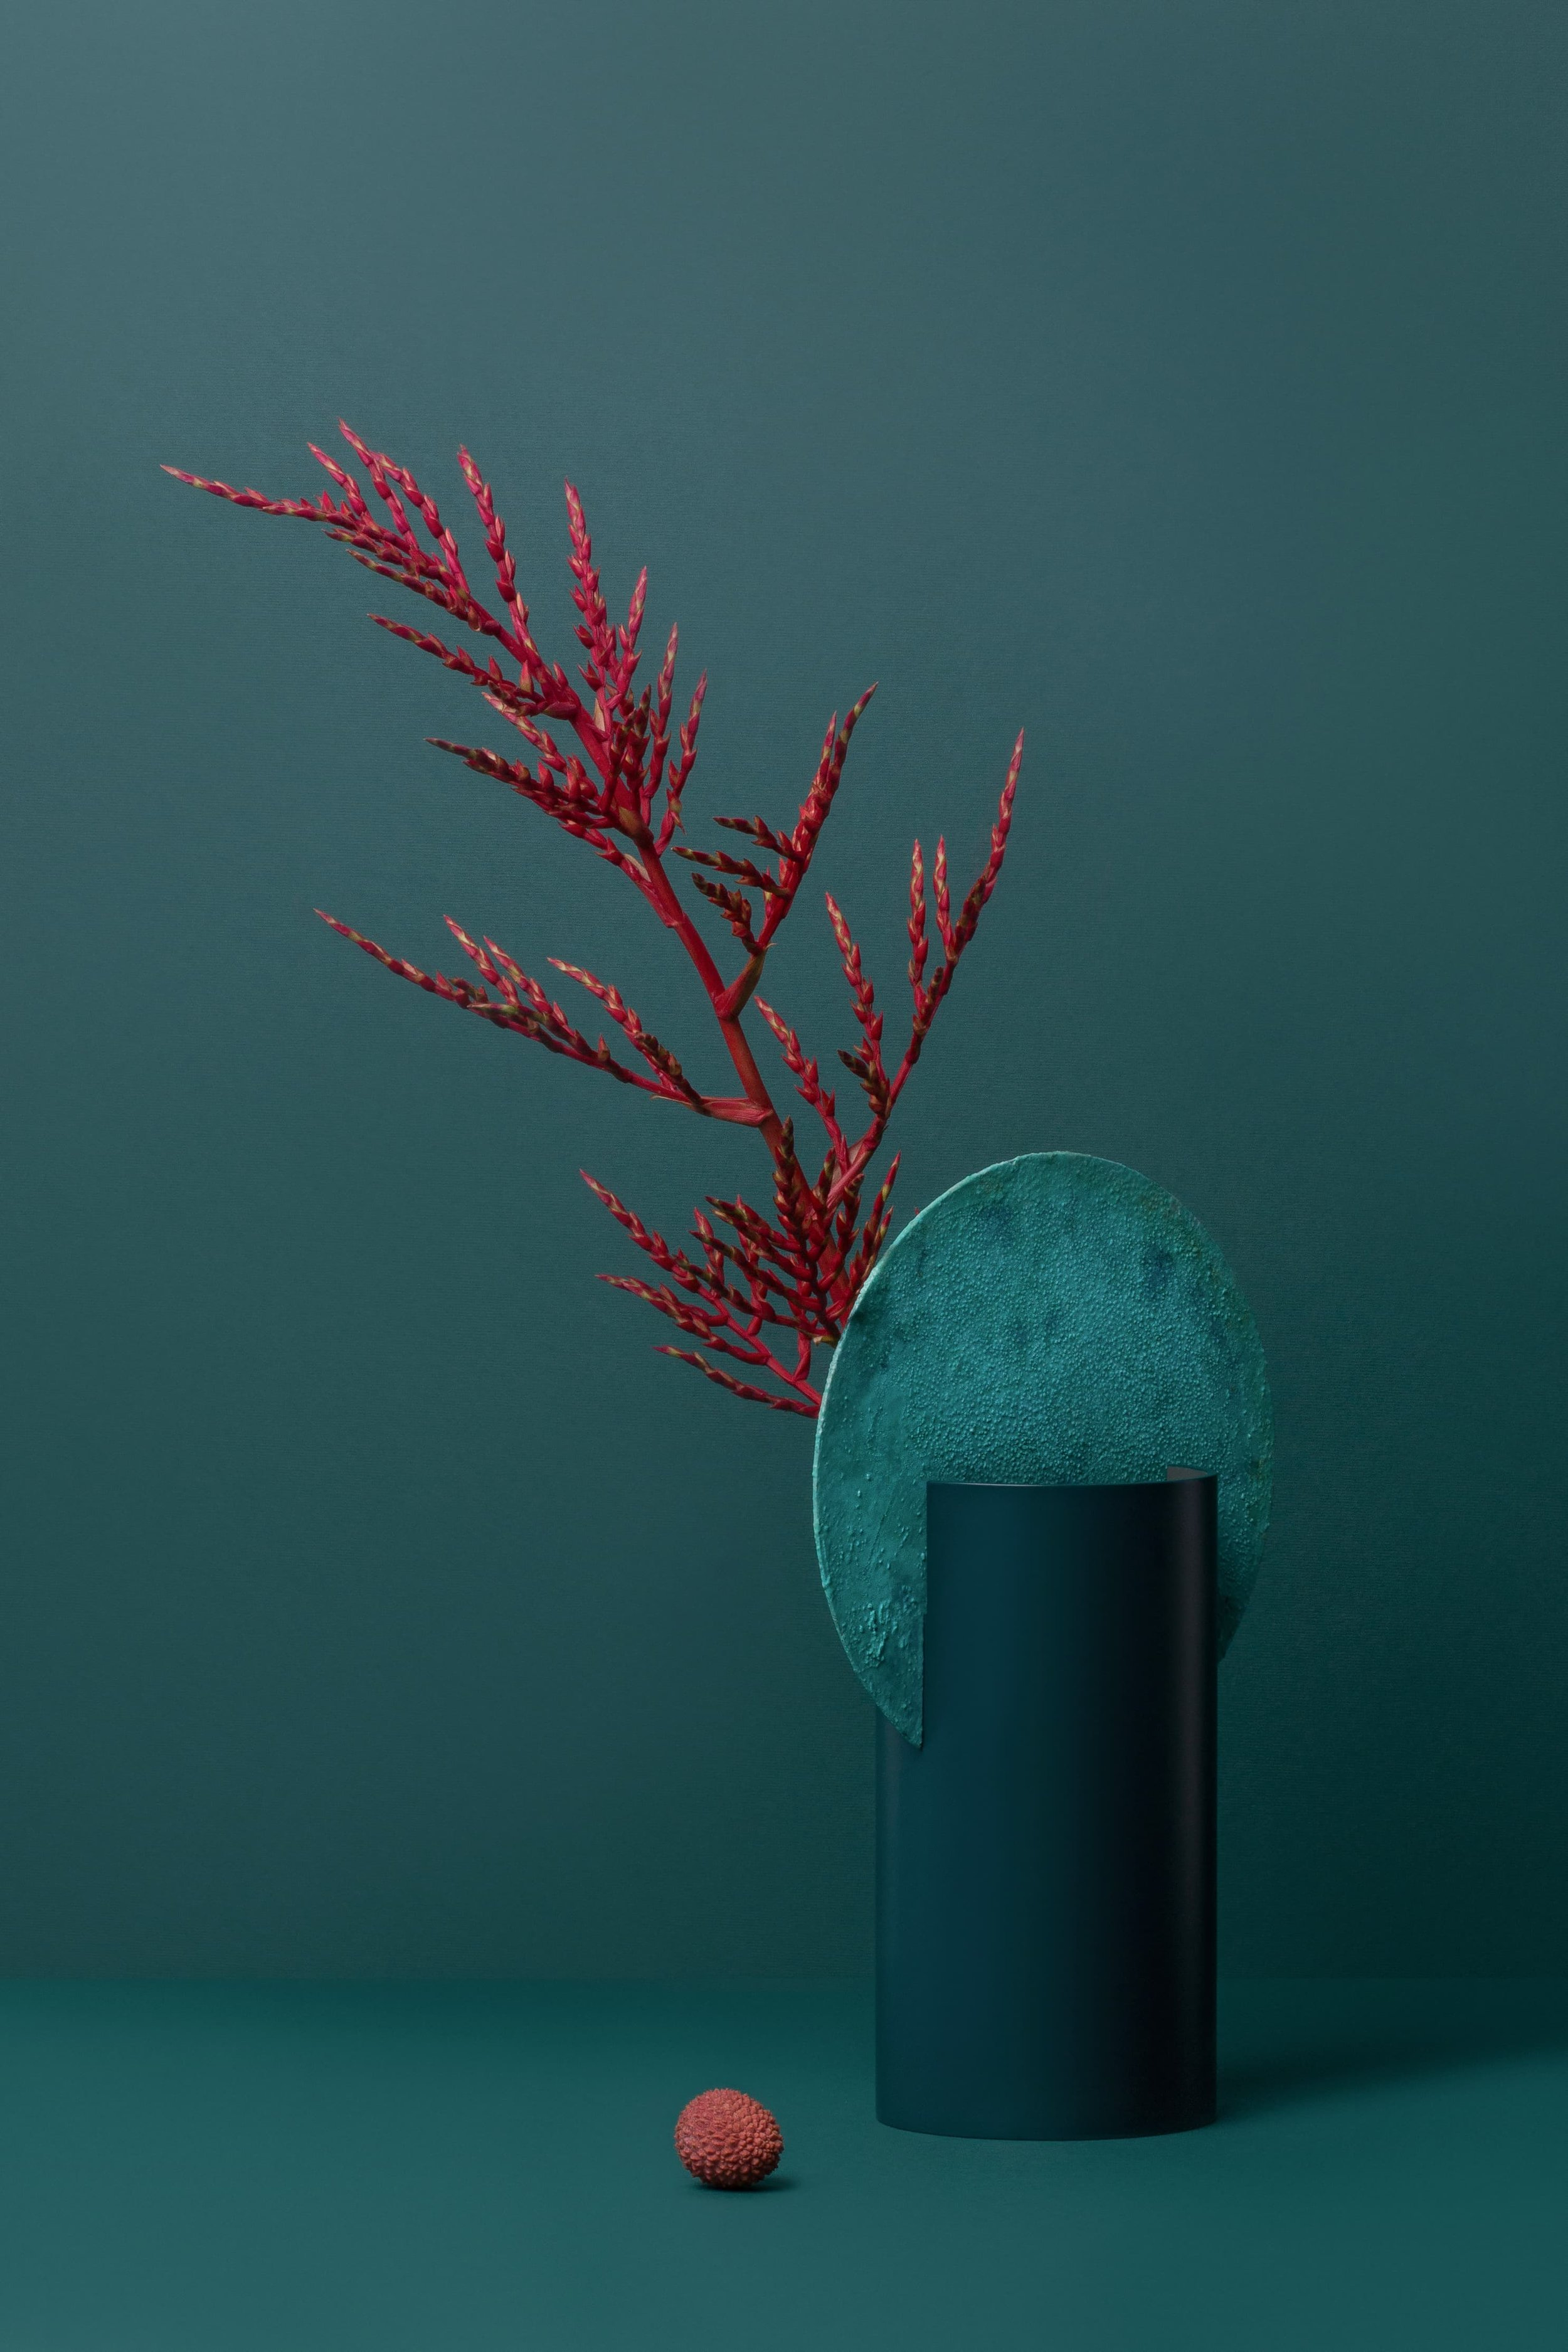 PIECE OF ART - Even an empty vase will always look like a small art object in your house.